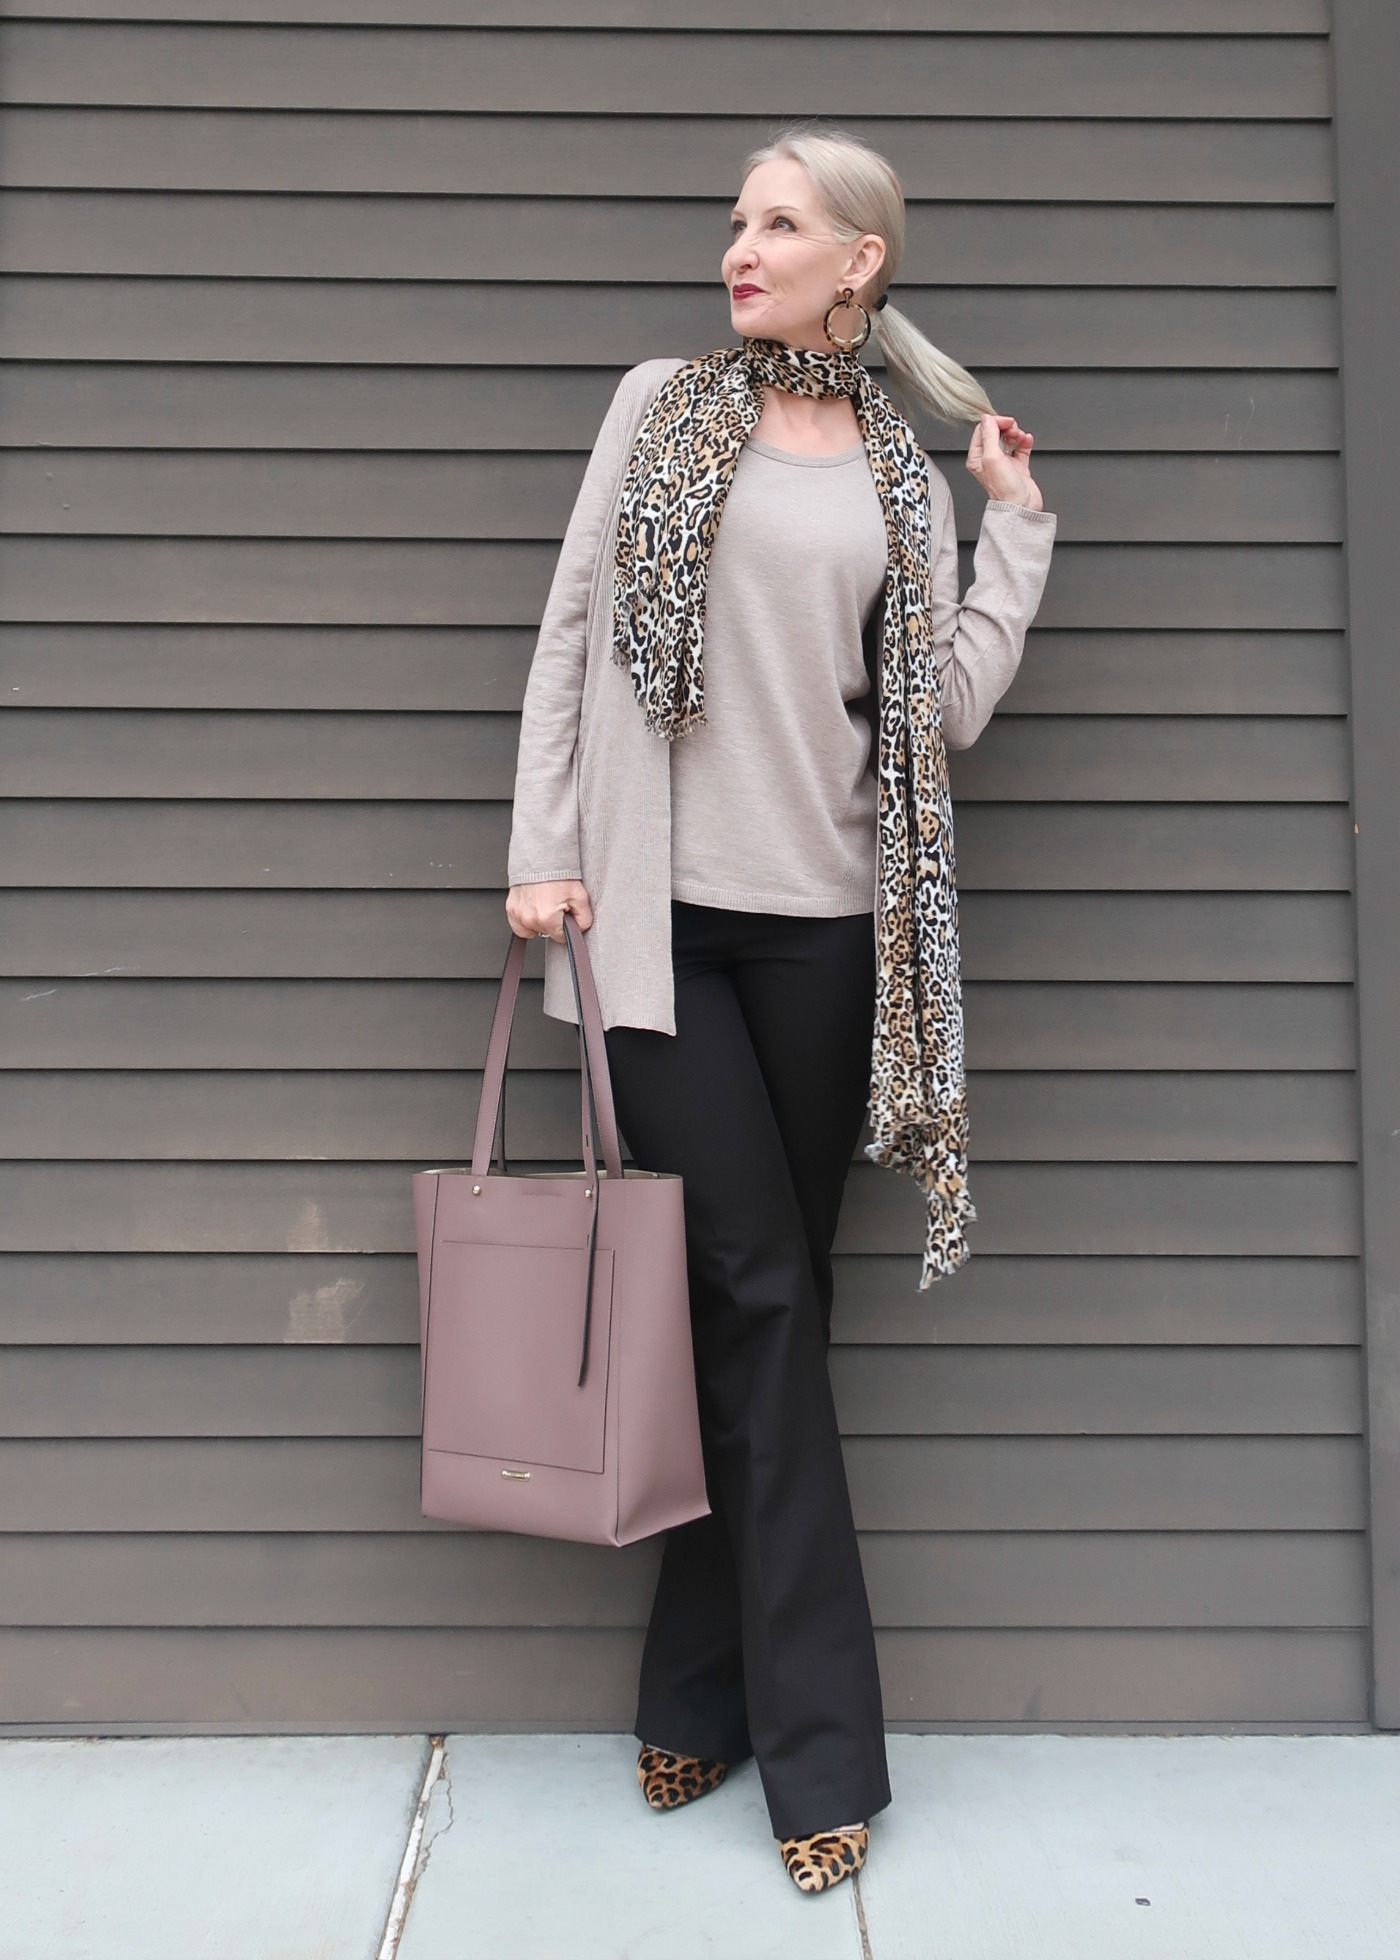 taupe sweater set from Chico's